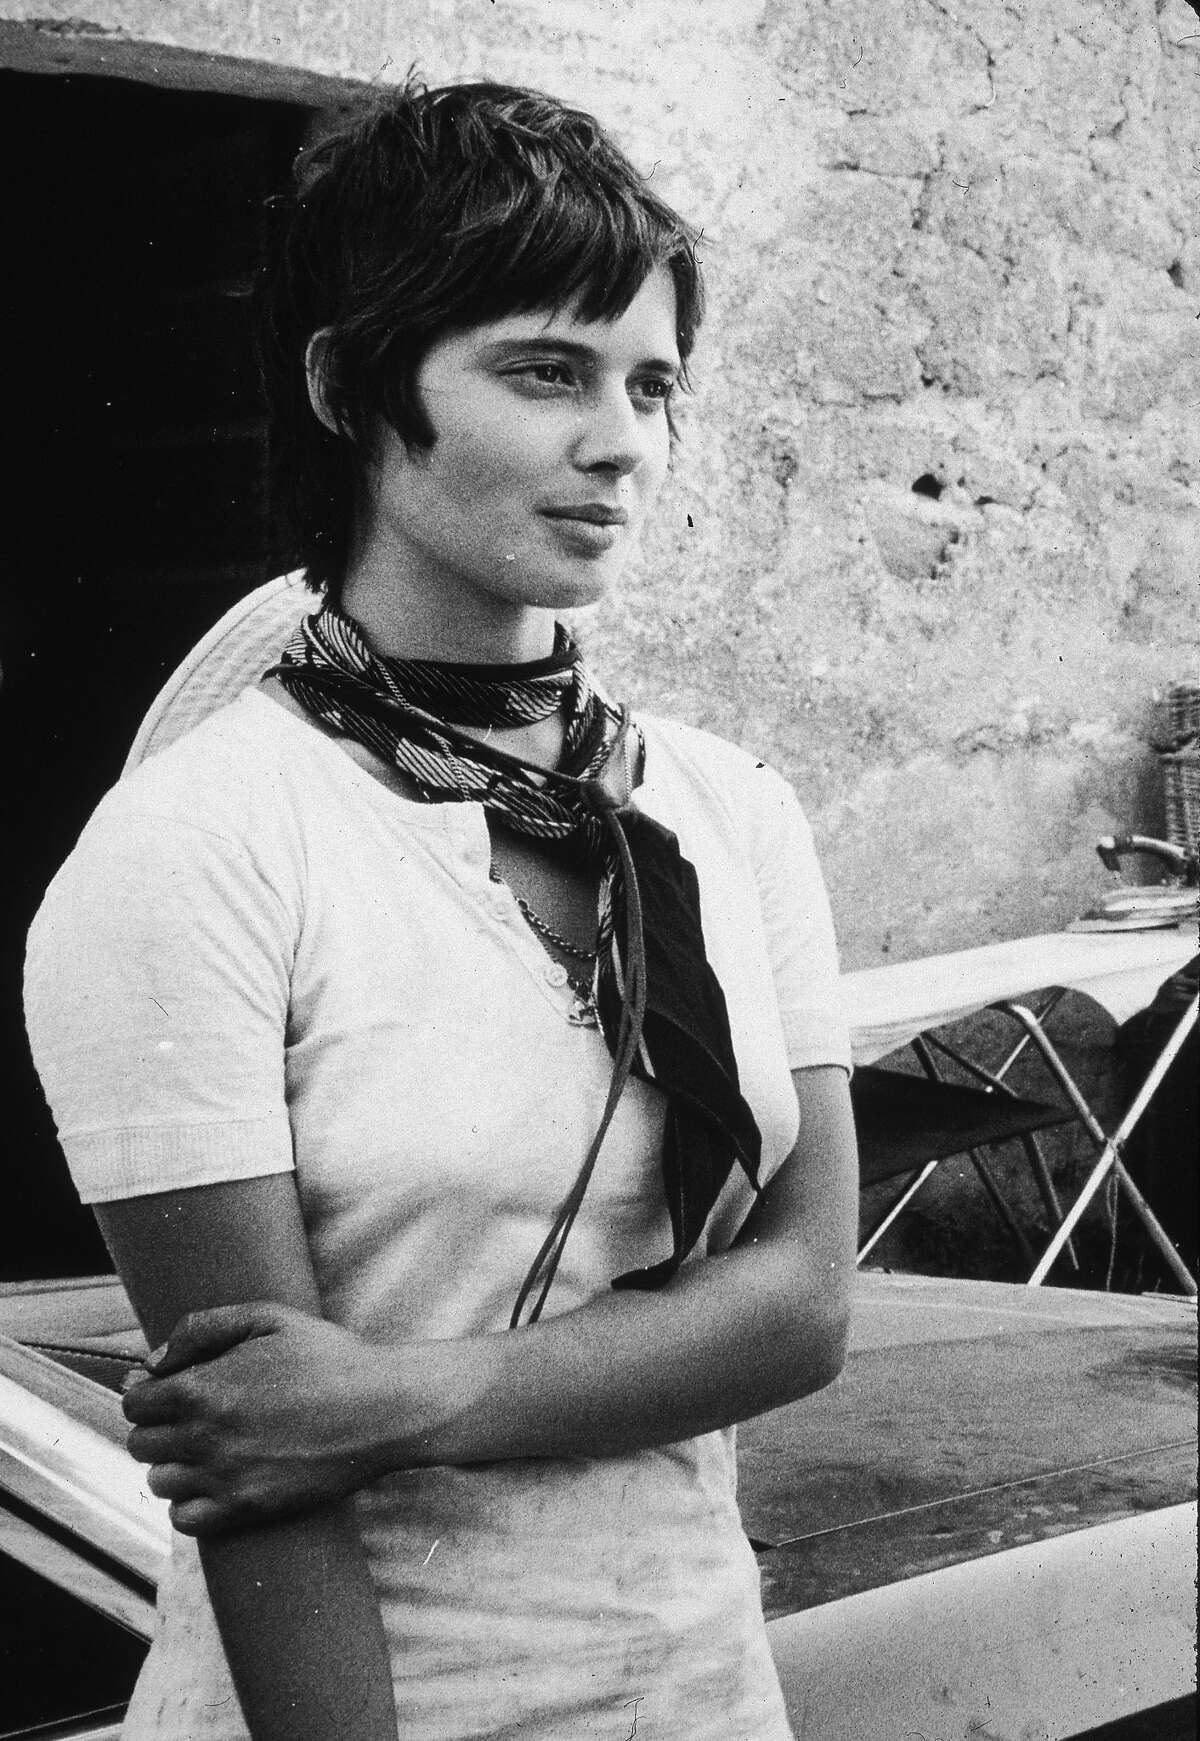 August 1971: Isabella Rossellini at age 19, in Rome on the set of her father/director Roberto Rossellini's film,